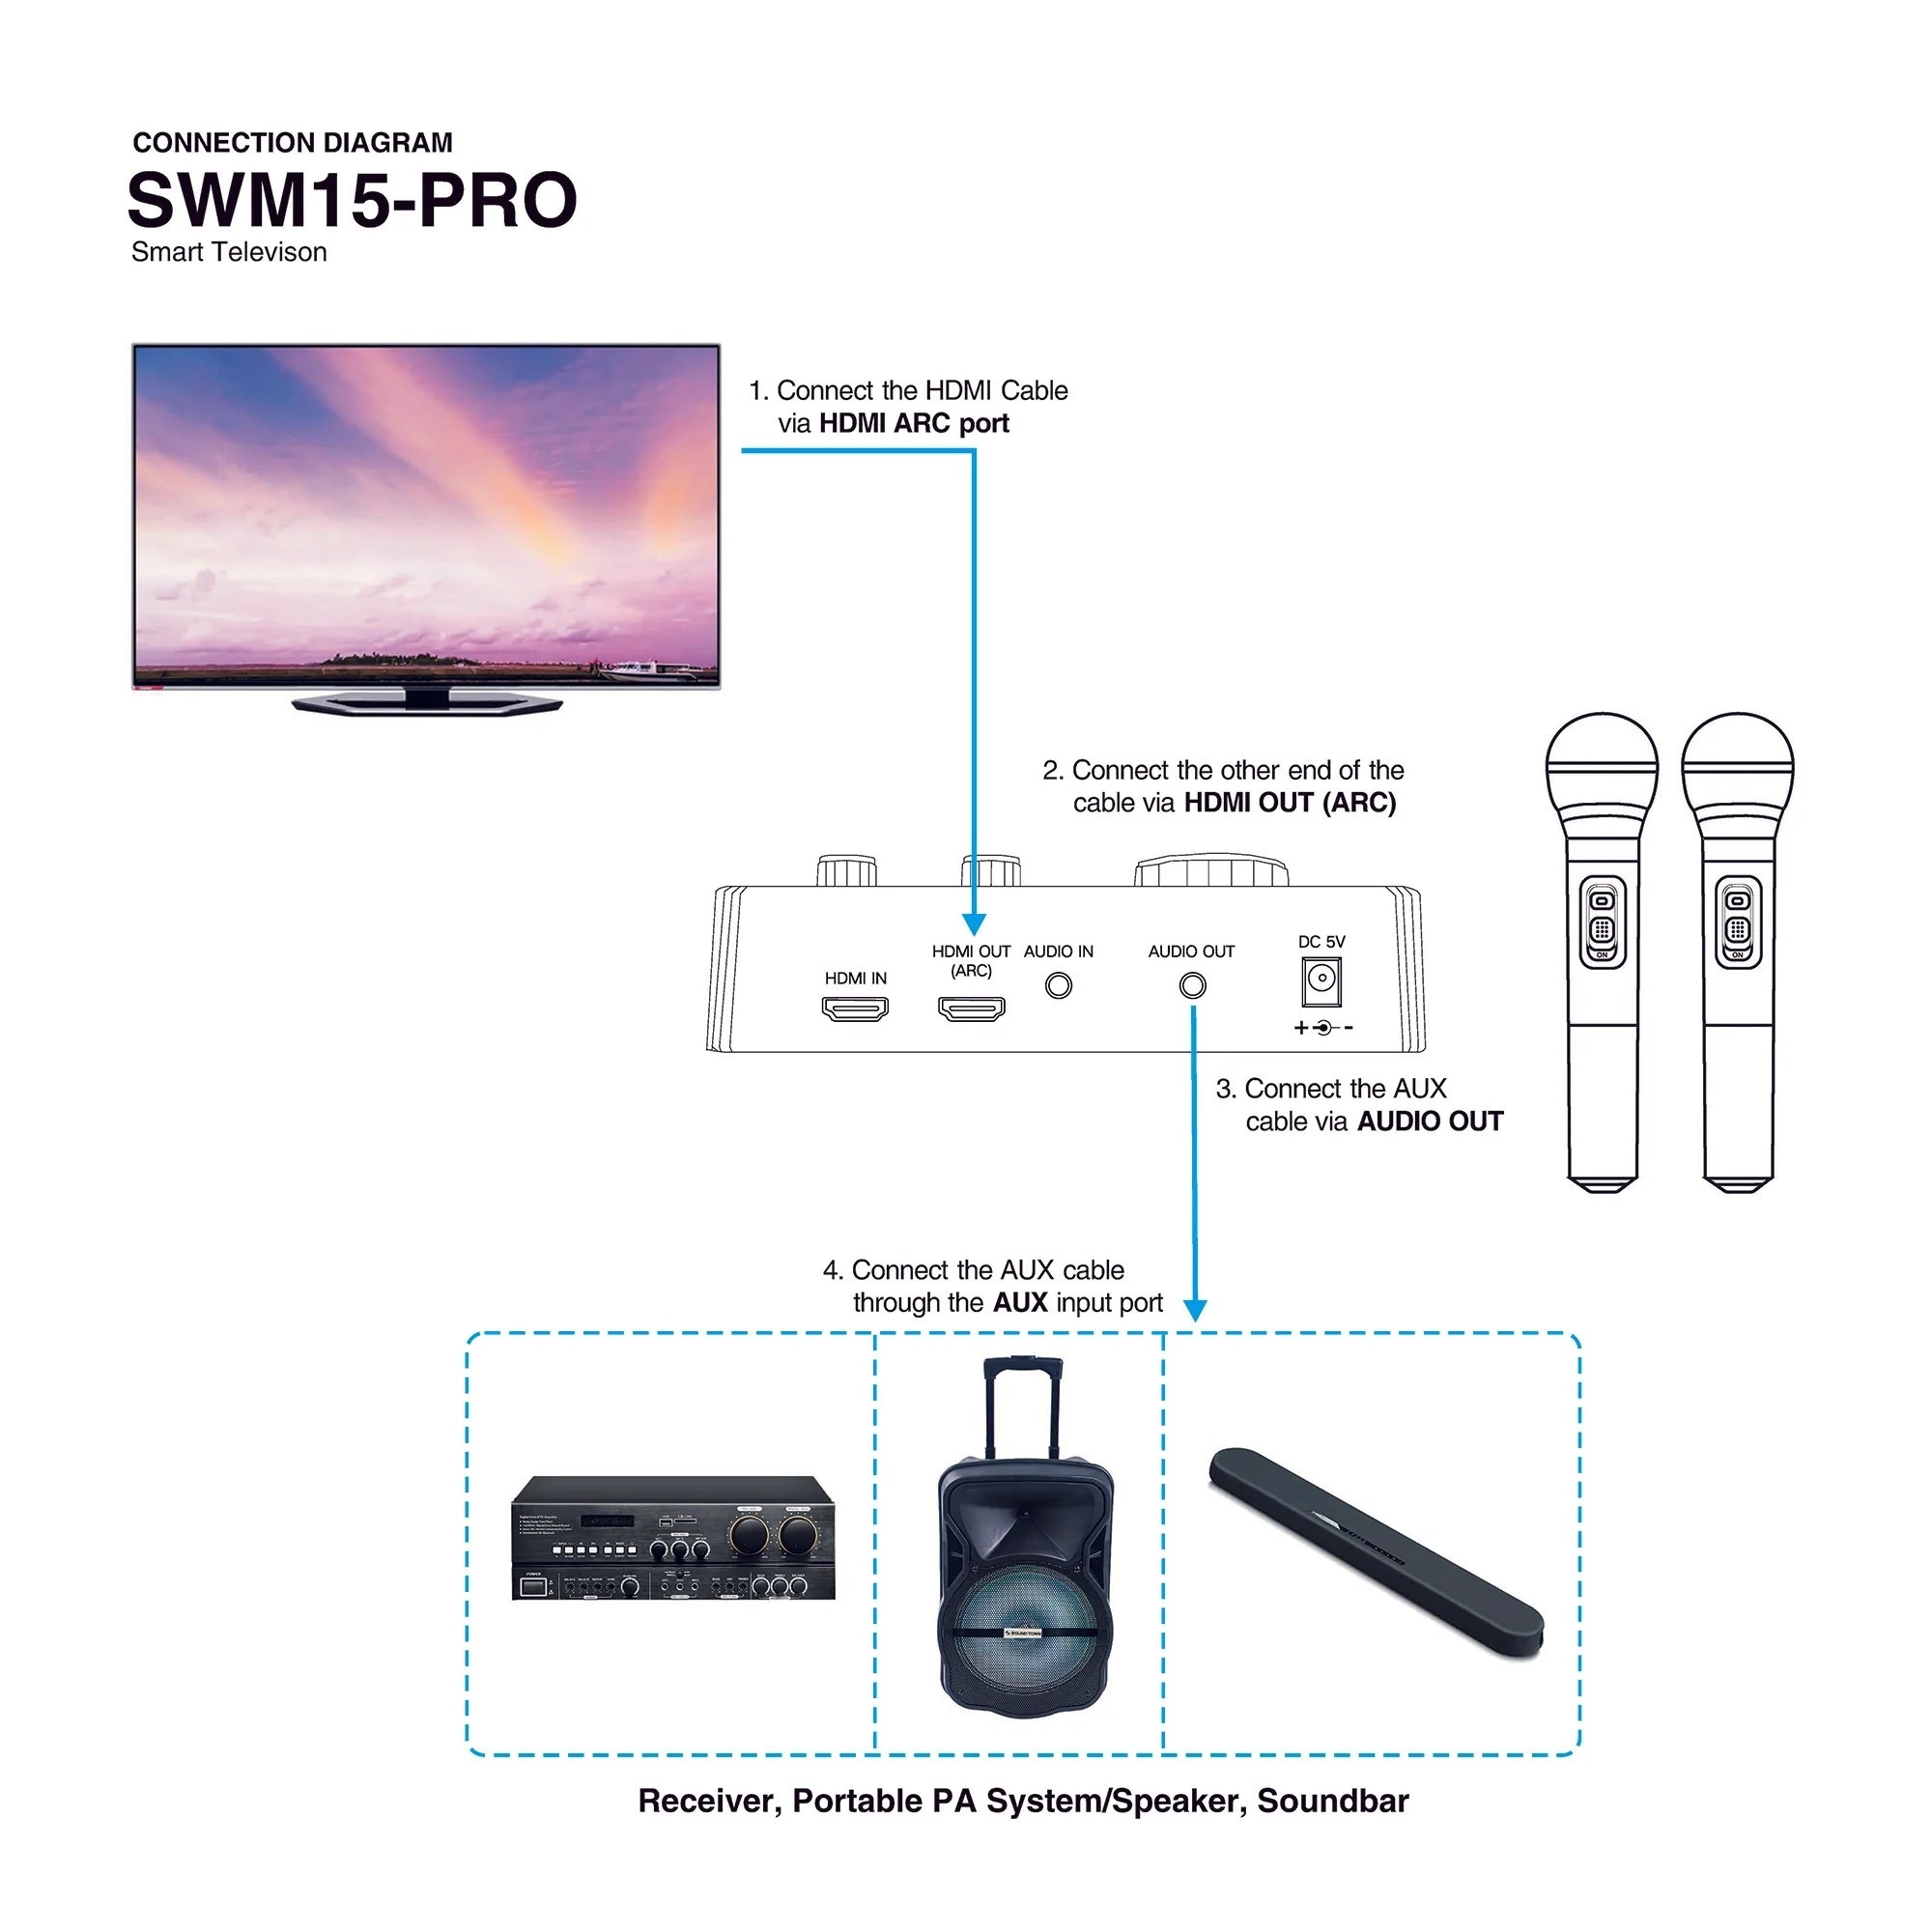 hight resolution of  sound town swm15 pro karaoke microphone system connection diagram hdmi arc smart tv television how